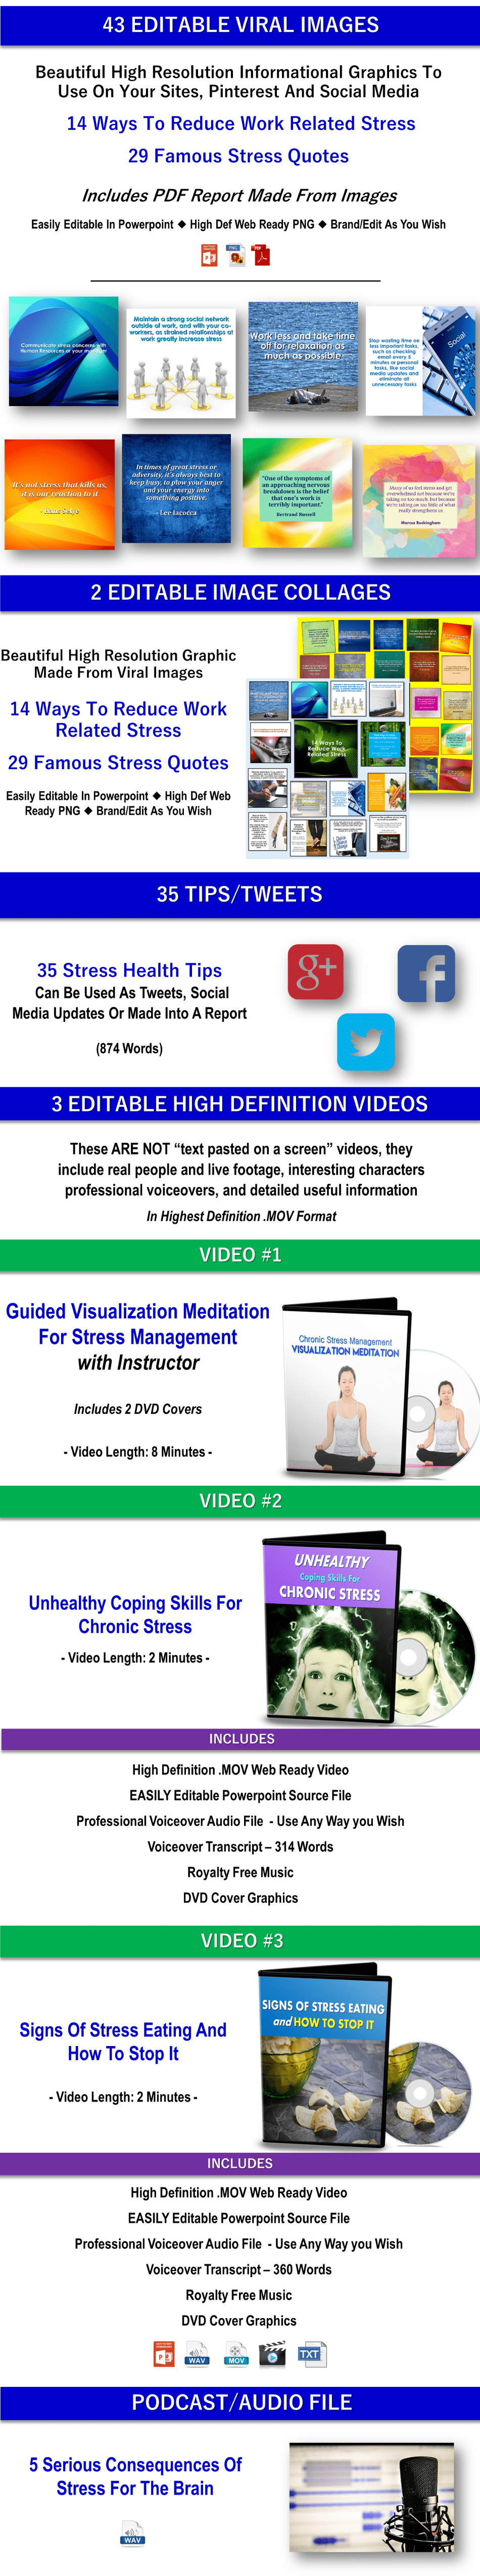 Chronic Stress Content - PLR Rights